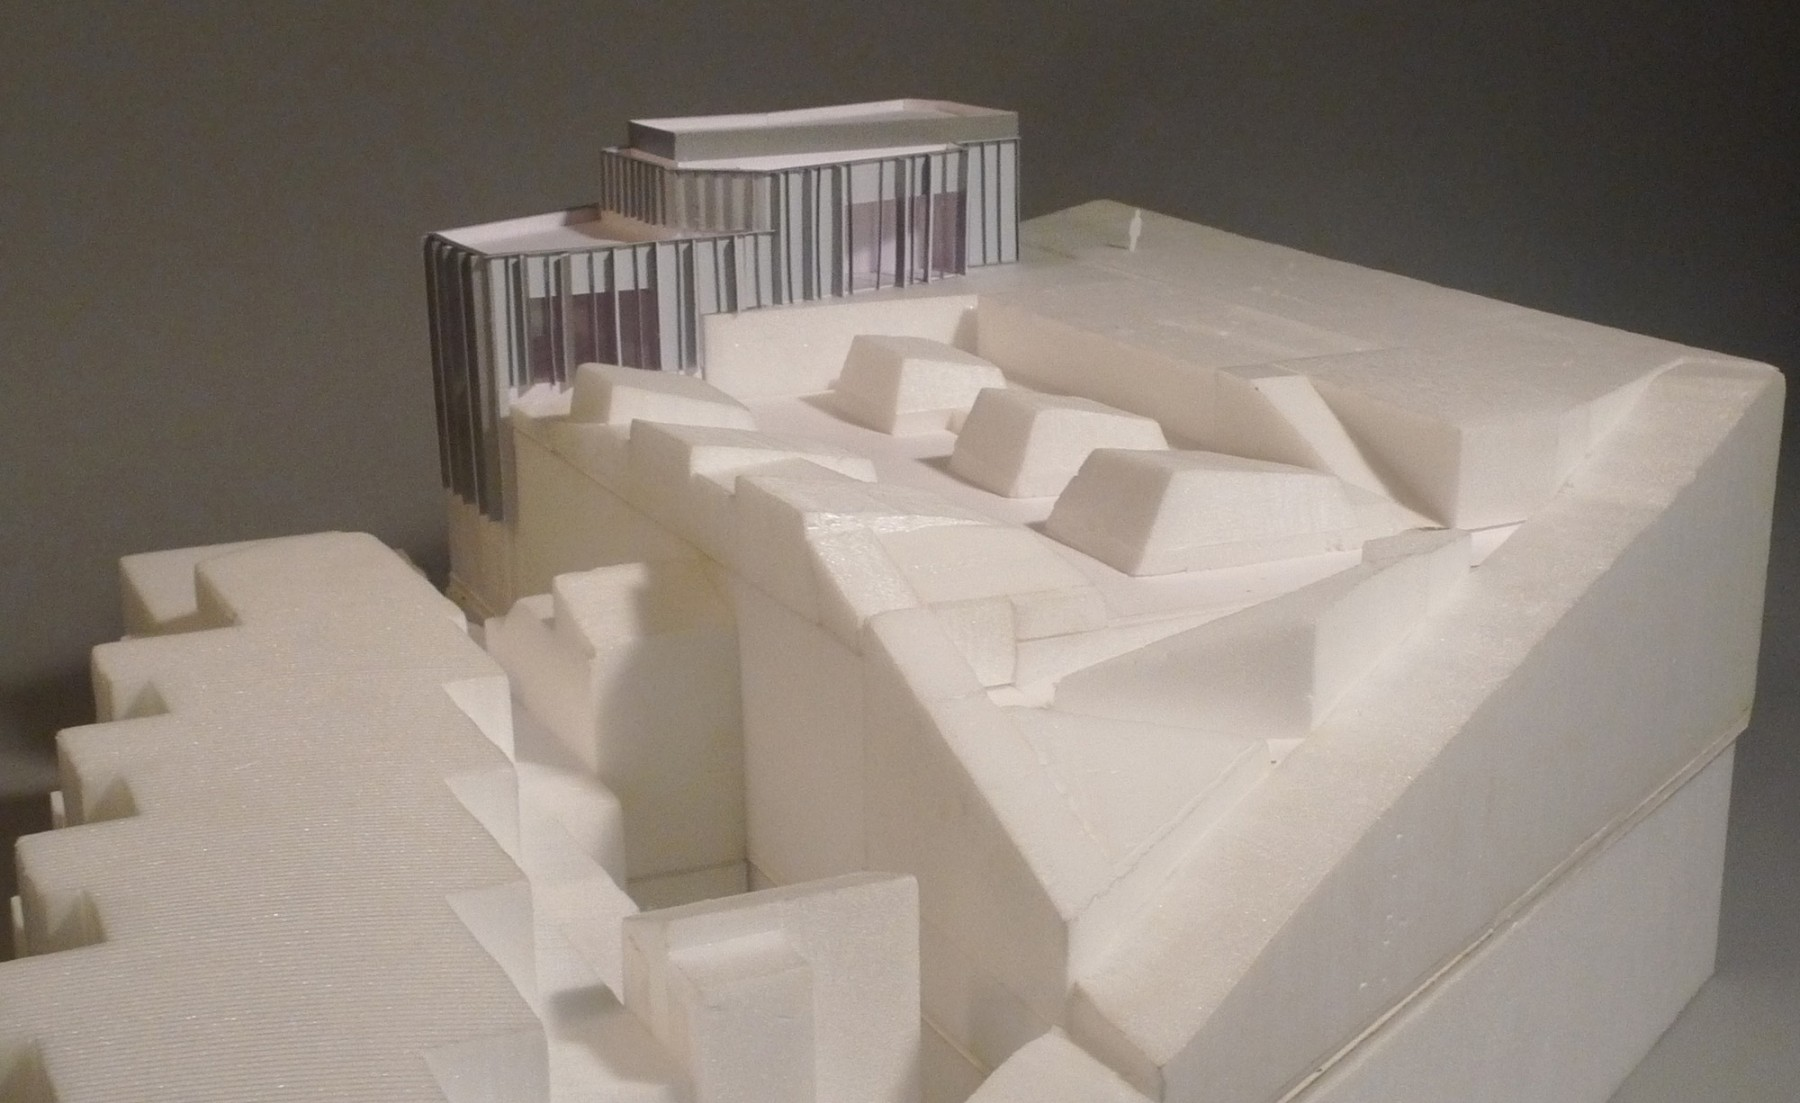 Jamie-Fobert-Architects-extension-to-Tate-St-Ives-foam-model-exterior- faience-pavilion